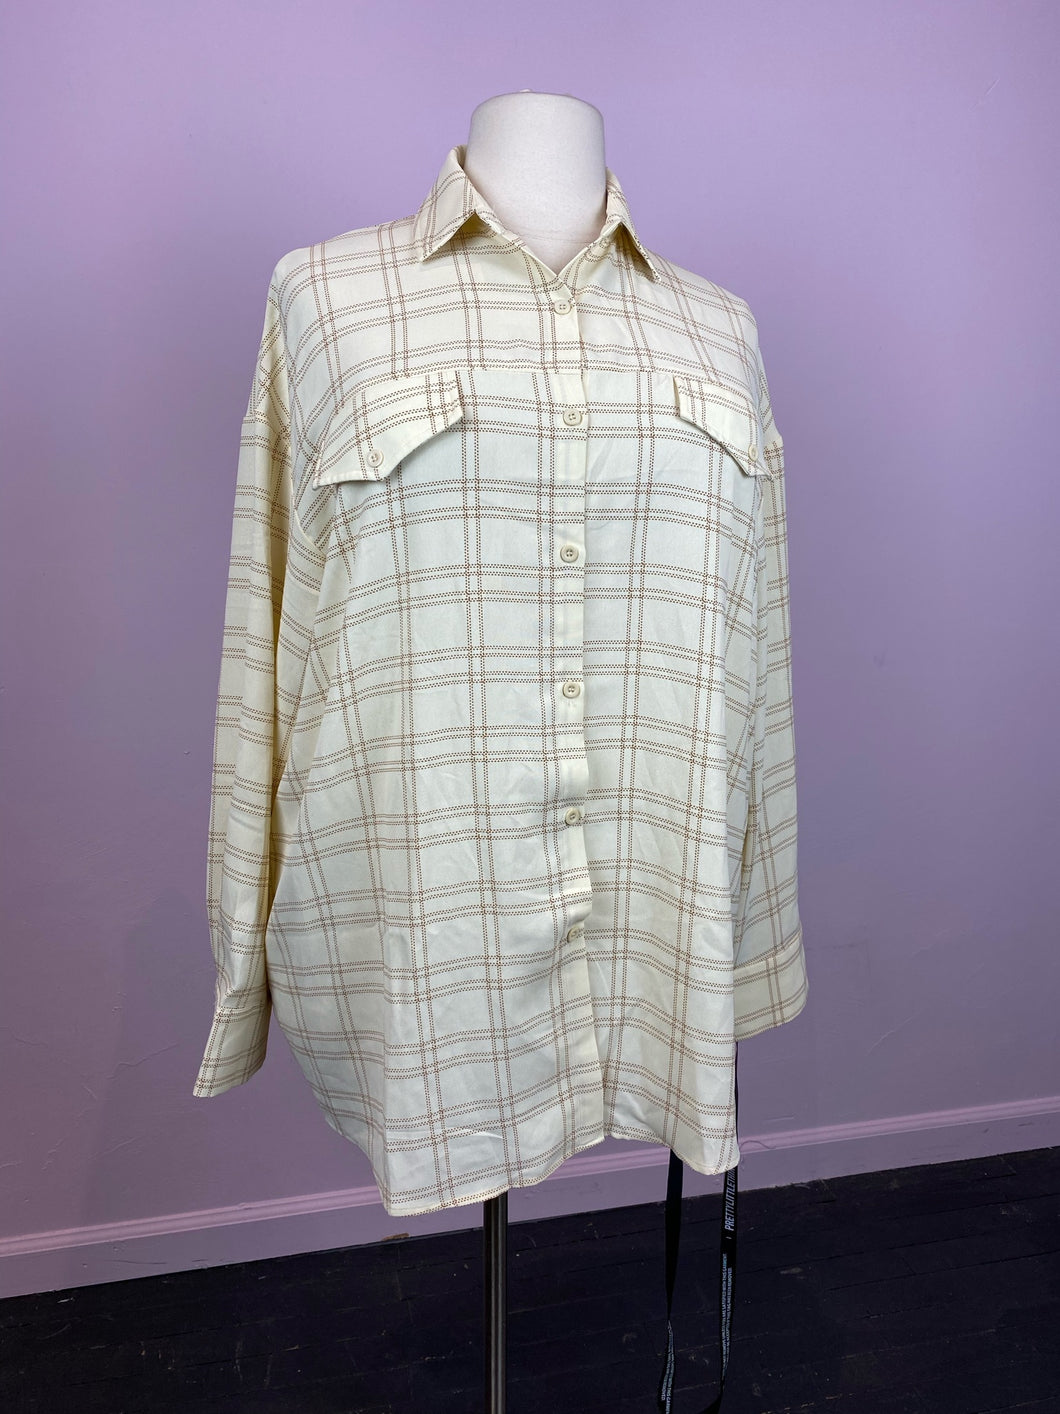 Cream and Gold Windowpane Plaid Oversize Button Up by Pretty Little Thing, Size 12